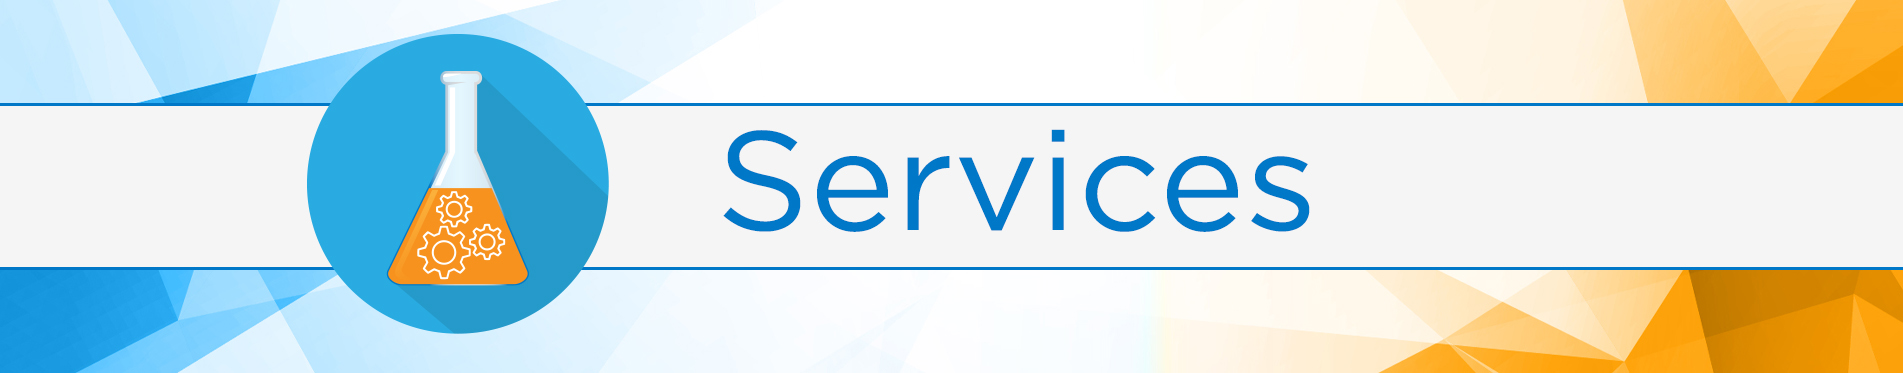 Services we offer at Hardy Diagnostics